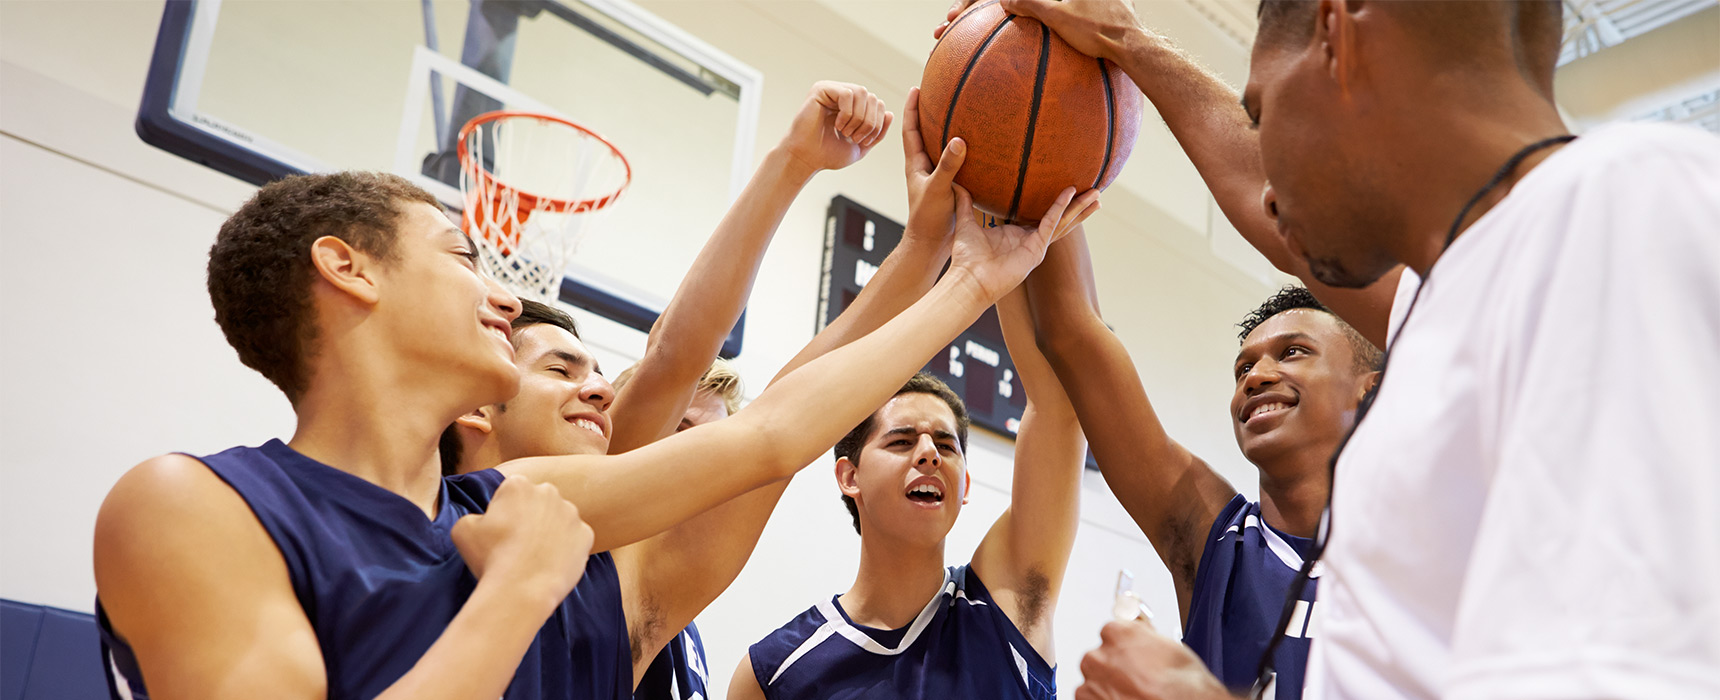 Why Young Kids Should Play Basketball